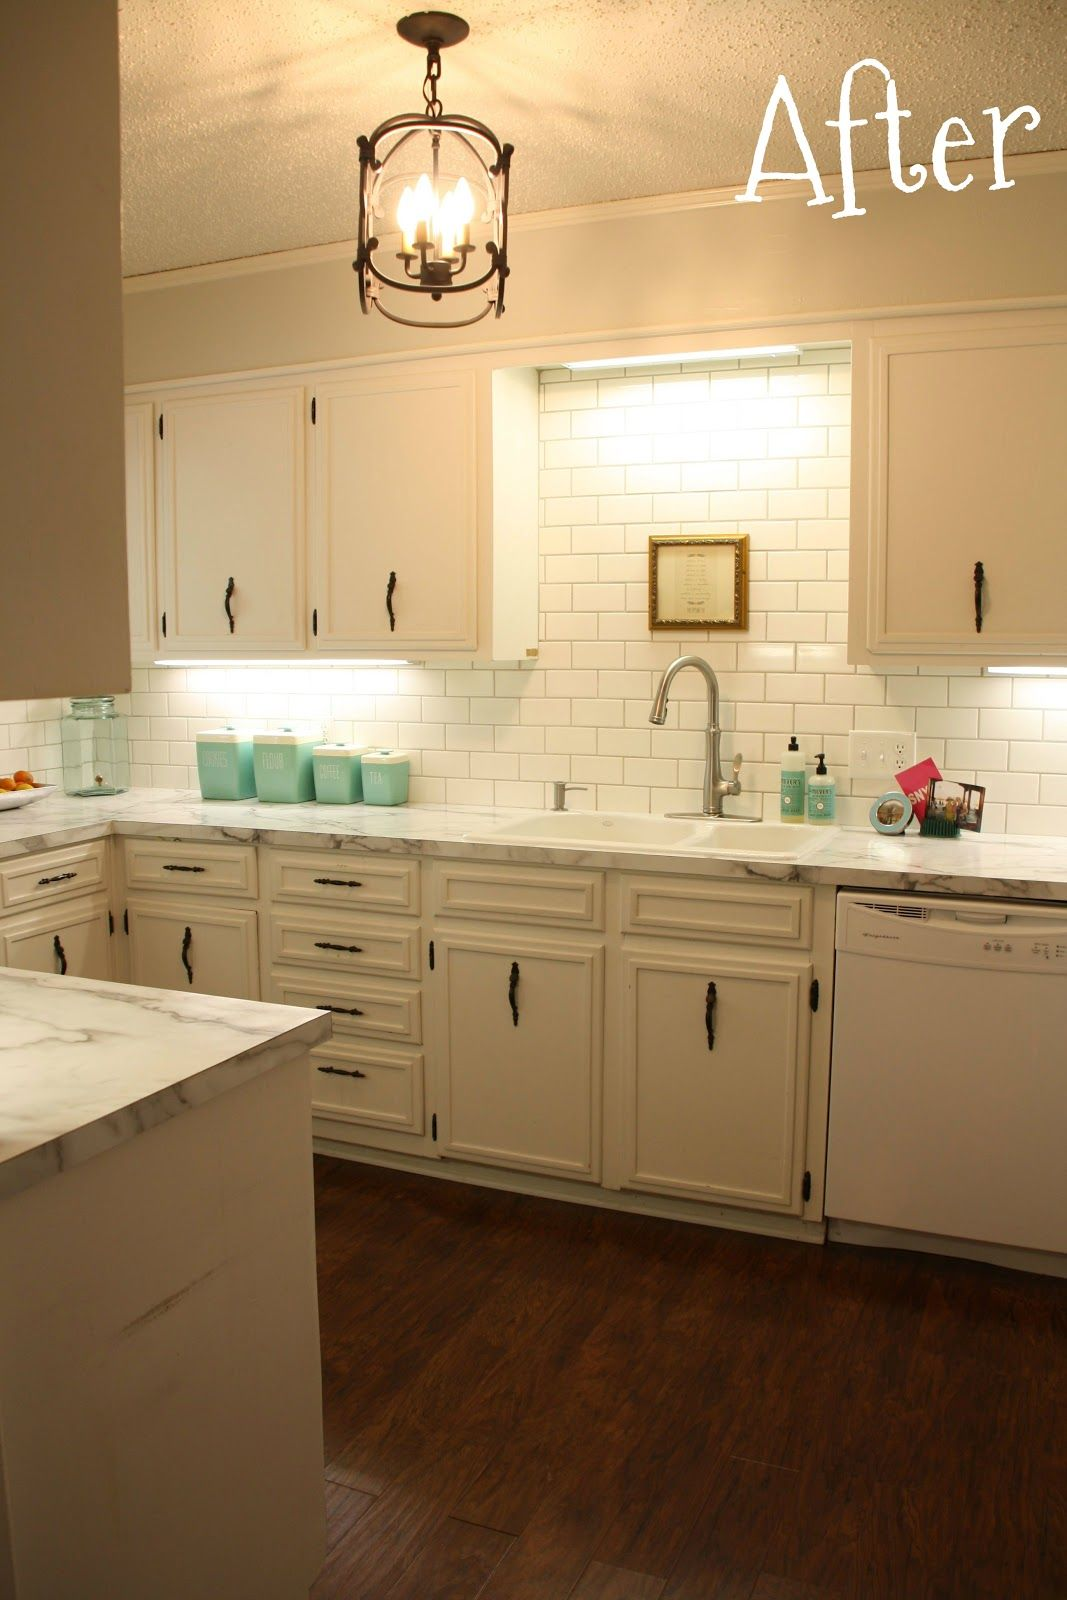 kitchen counter sink an files howtos how uncategorized diy replacing countertops to pict old replace laminate and of countertop ideas stunning remove trends